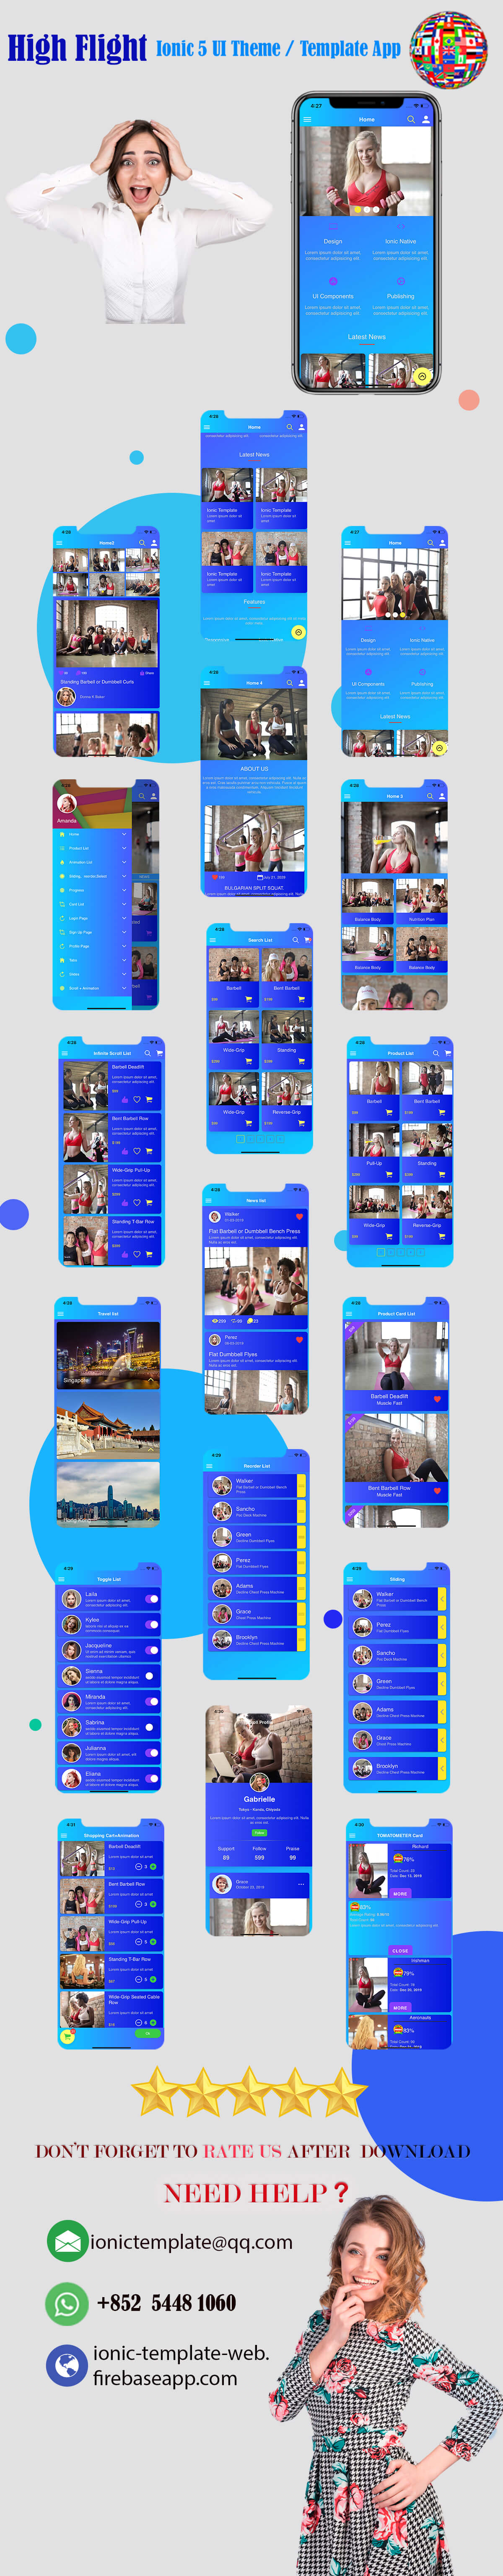 High Flight/Ionic 4 / Angular 8 UI Theme / Template App | Starter App